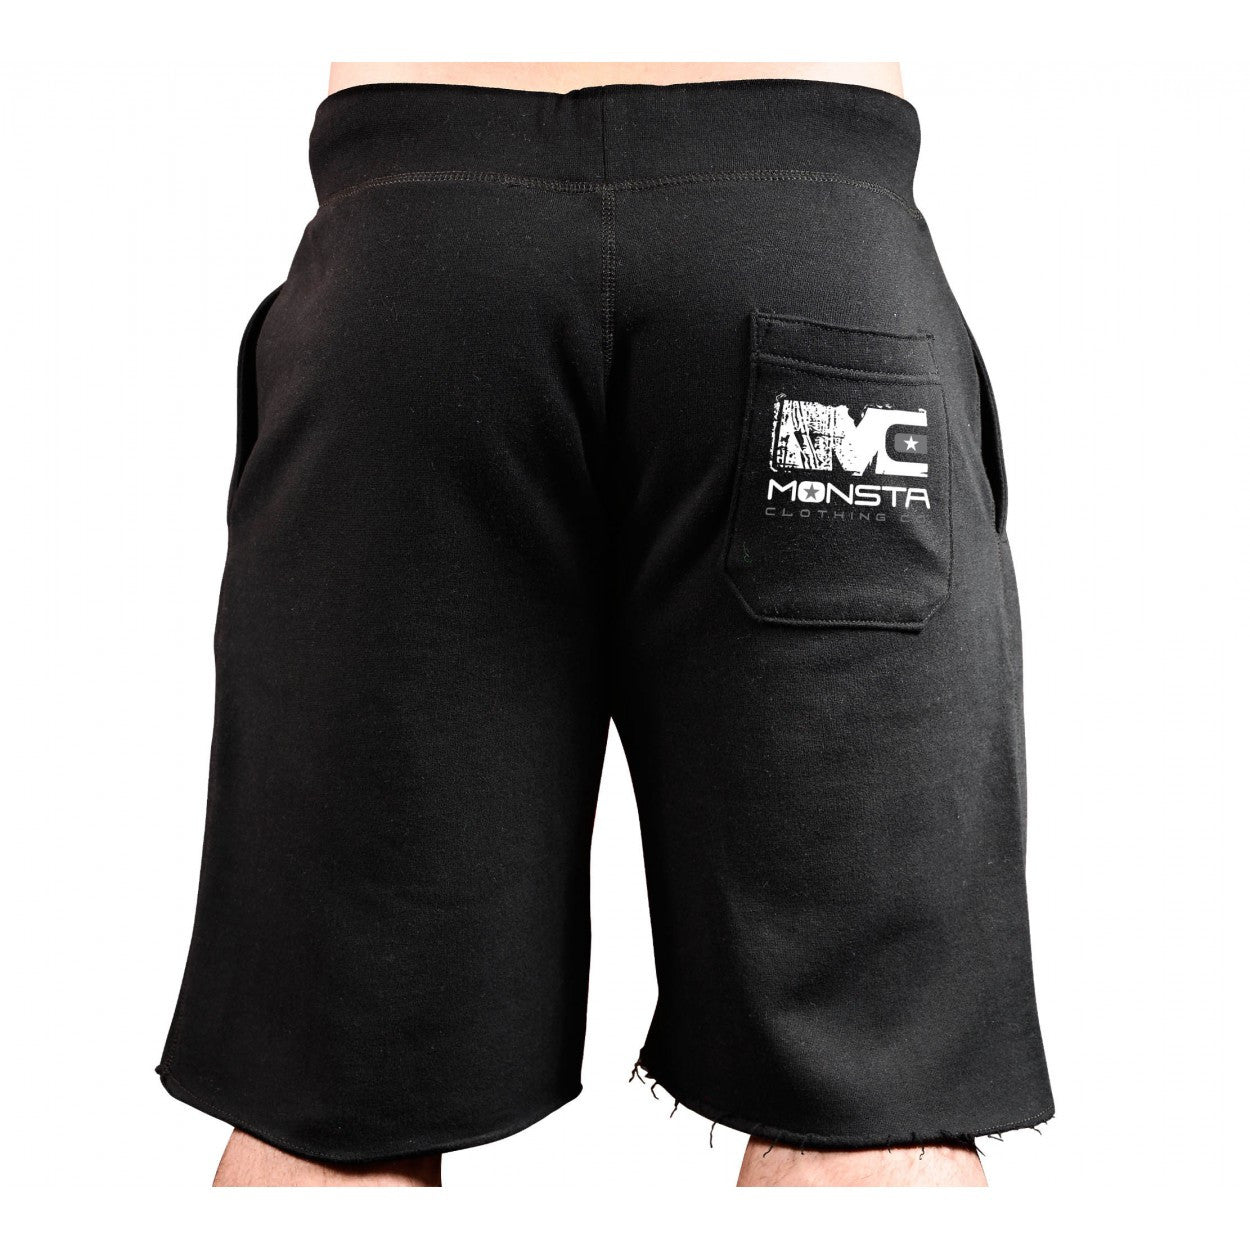 SHORTS: EMBRACE PAIN-EARNING MY STRIPES SWEATSHORTS-190 - Monsta Clothing Australia